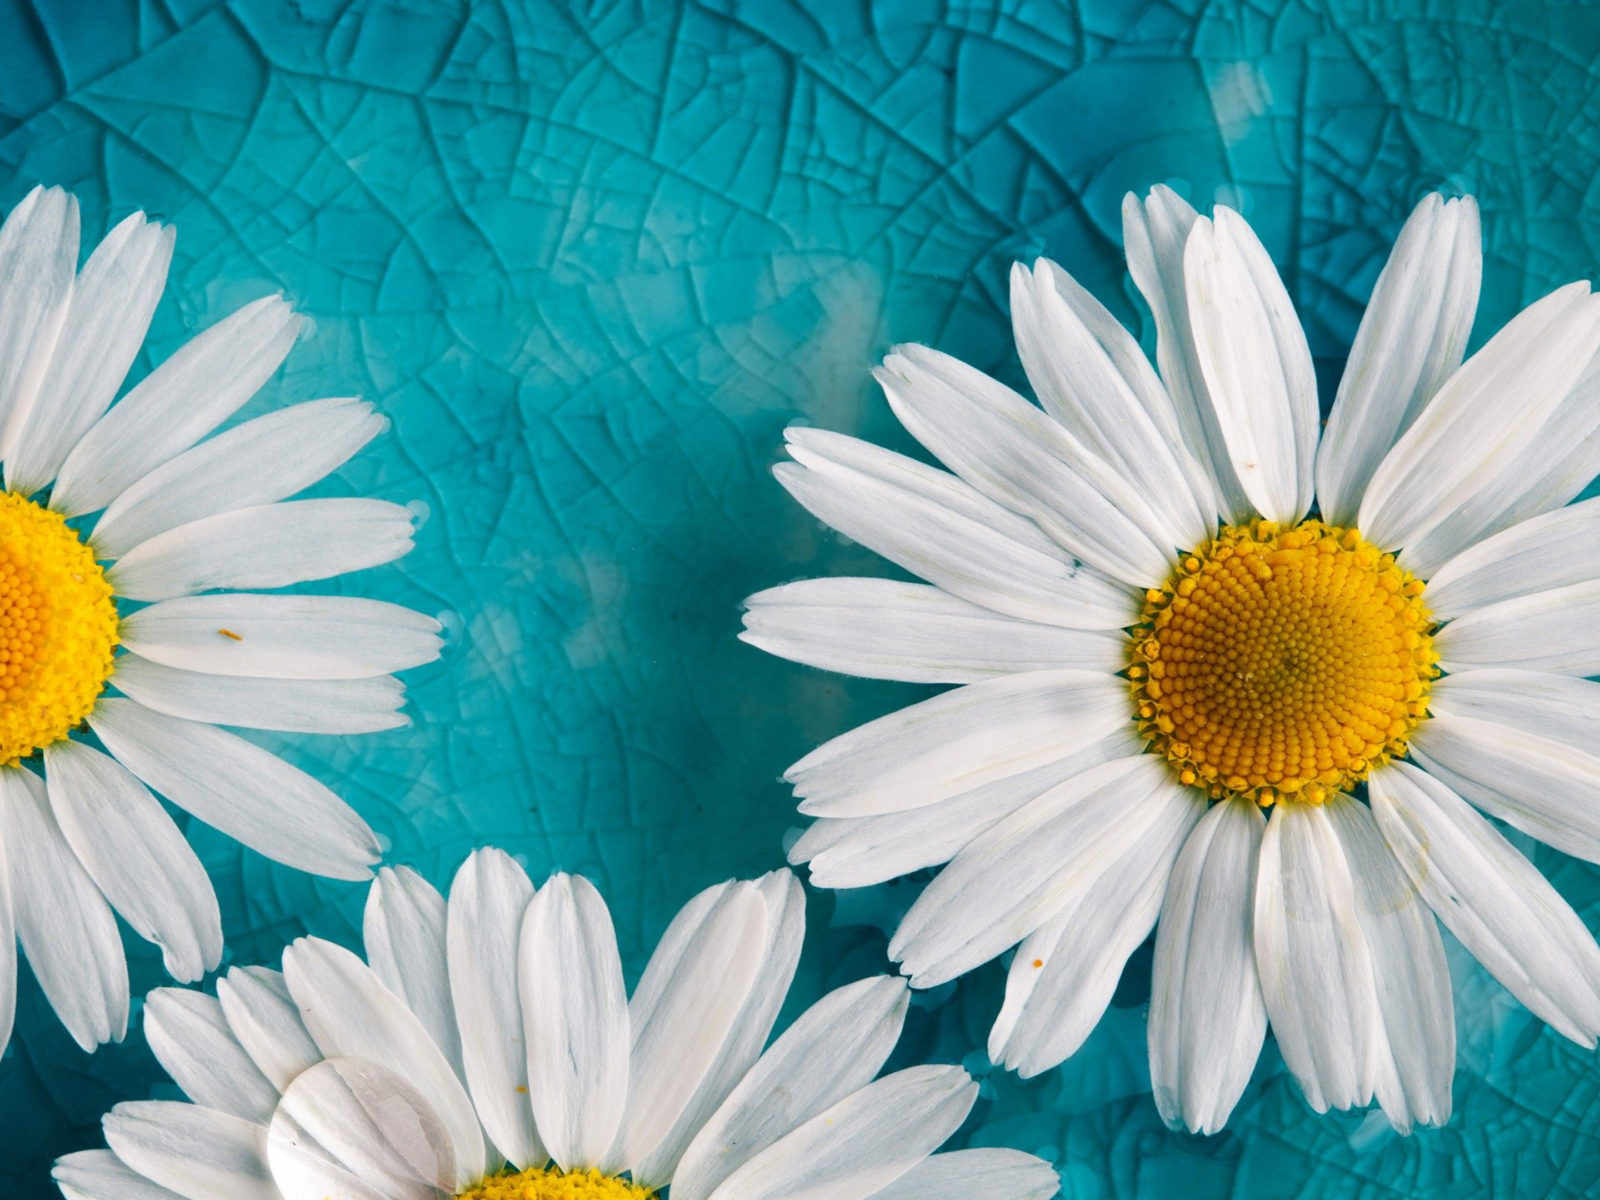 Iphone X Cracked Screen Wallpaper Yellow White Flowers Blue Cracked Glass Hd Wallpaper